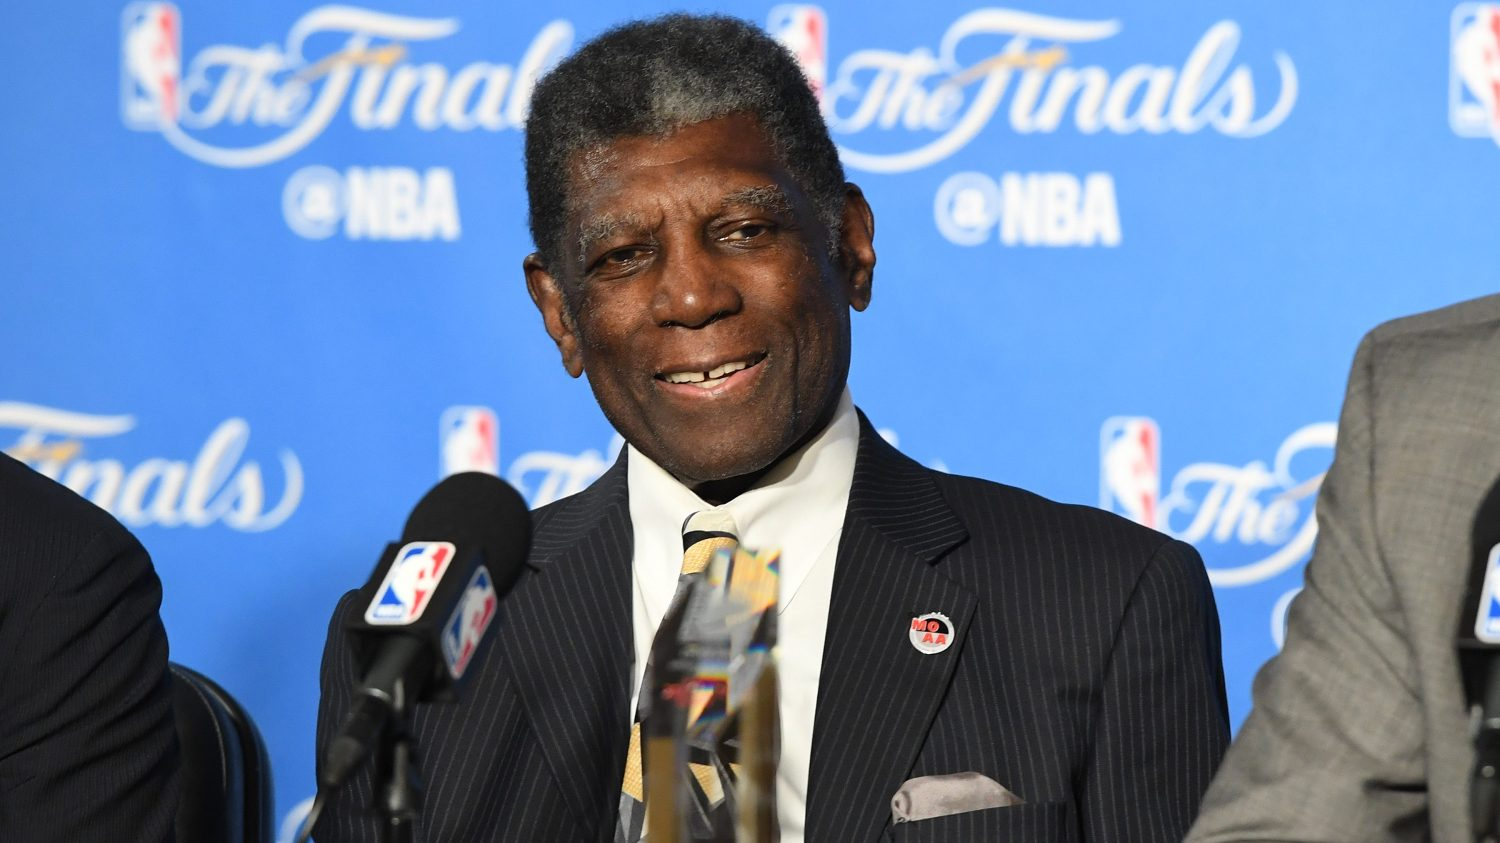 Al Attles reflects on his illustrious career ahead of Hall of Fame induction